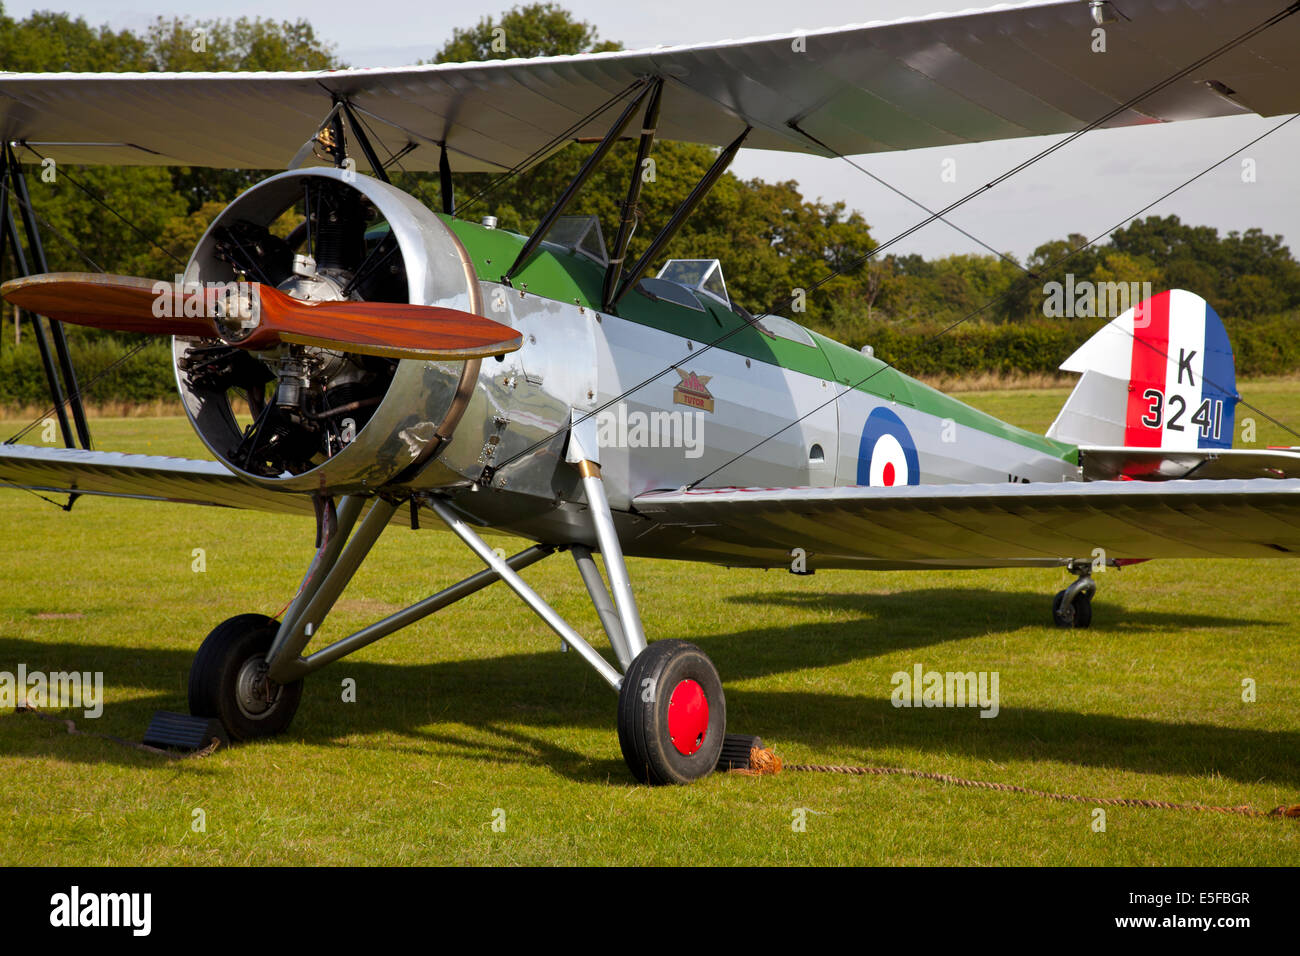 England UK circa 2014 The Avro Tutor K3241 Bi Plane moored at a vintage air pageant before display - Stock Image